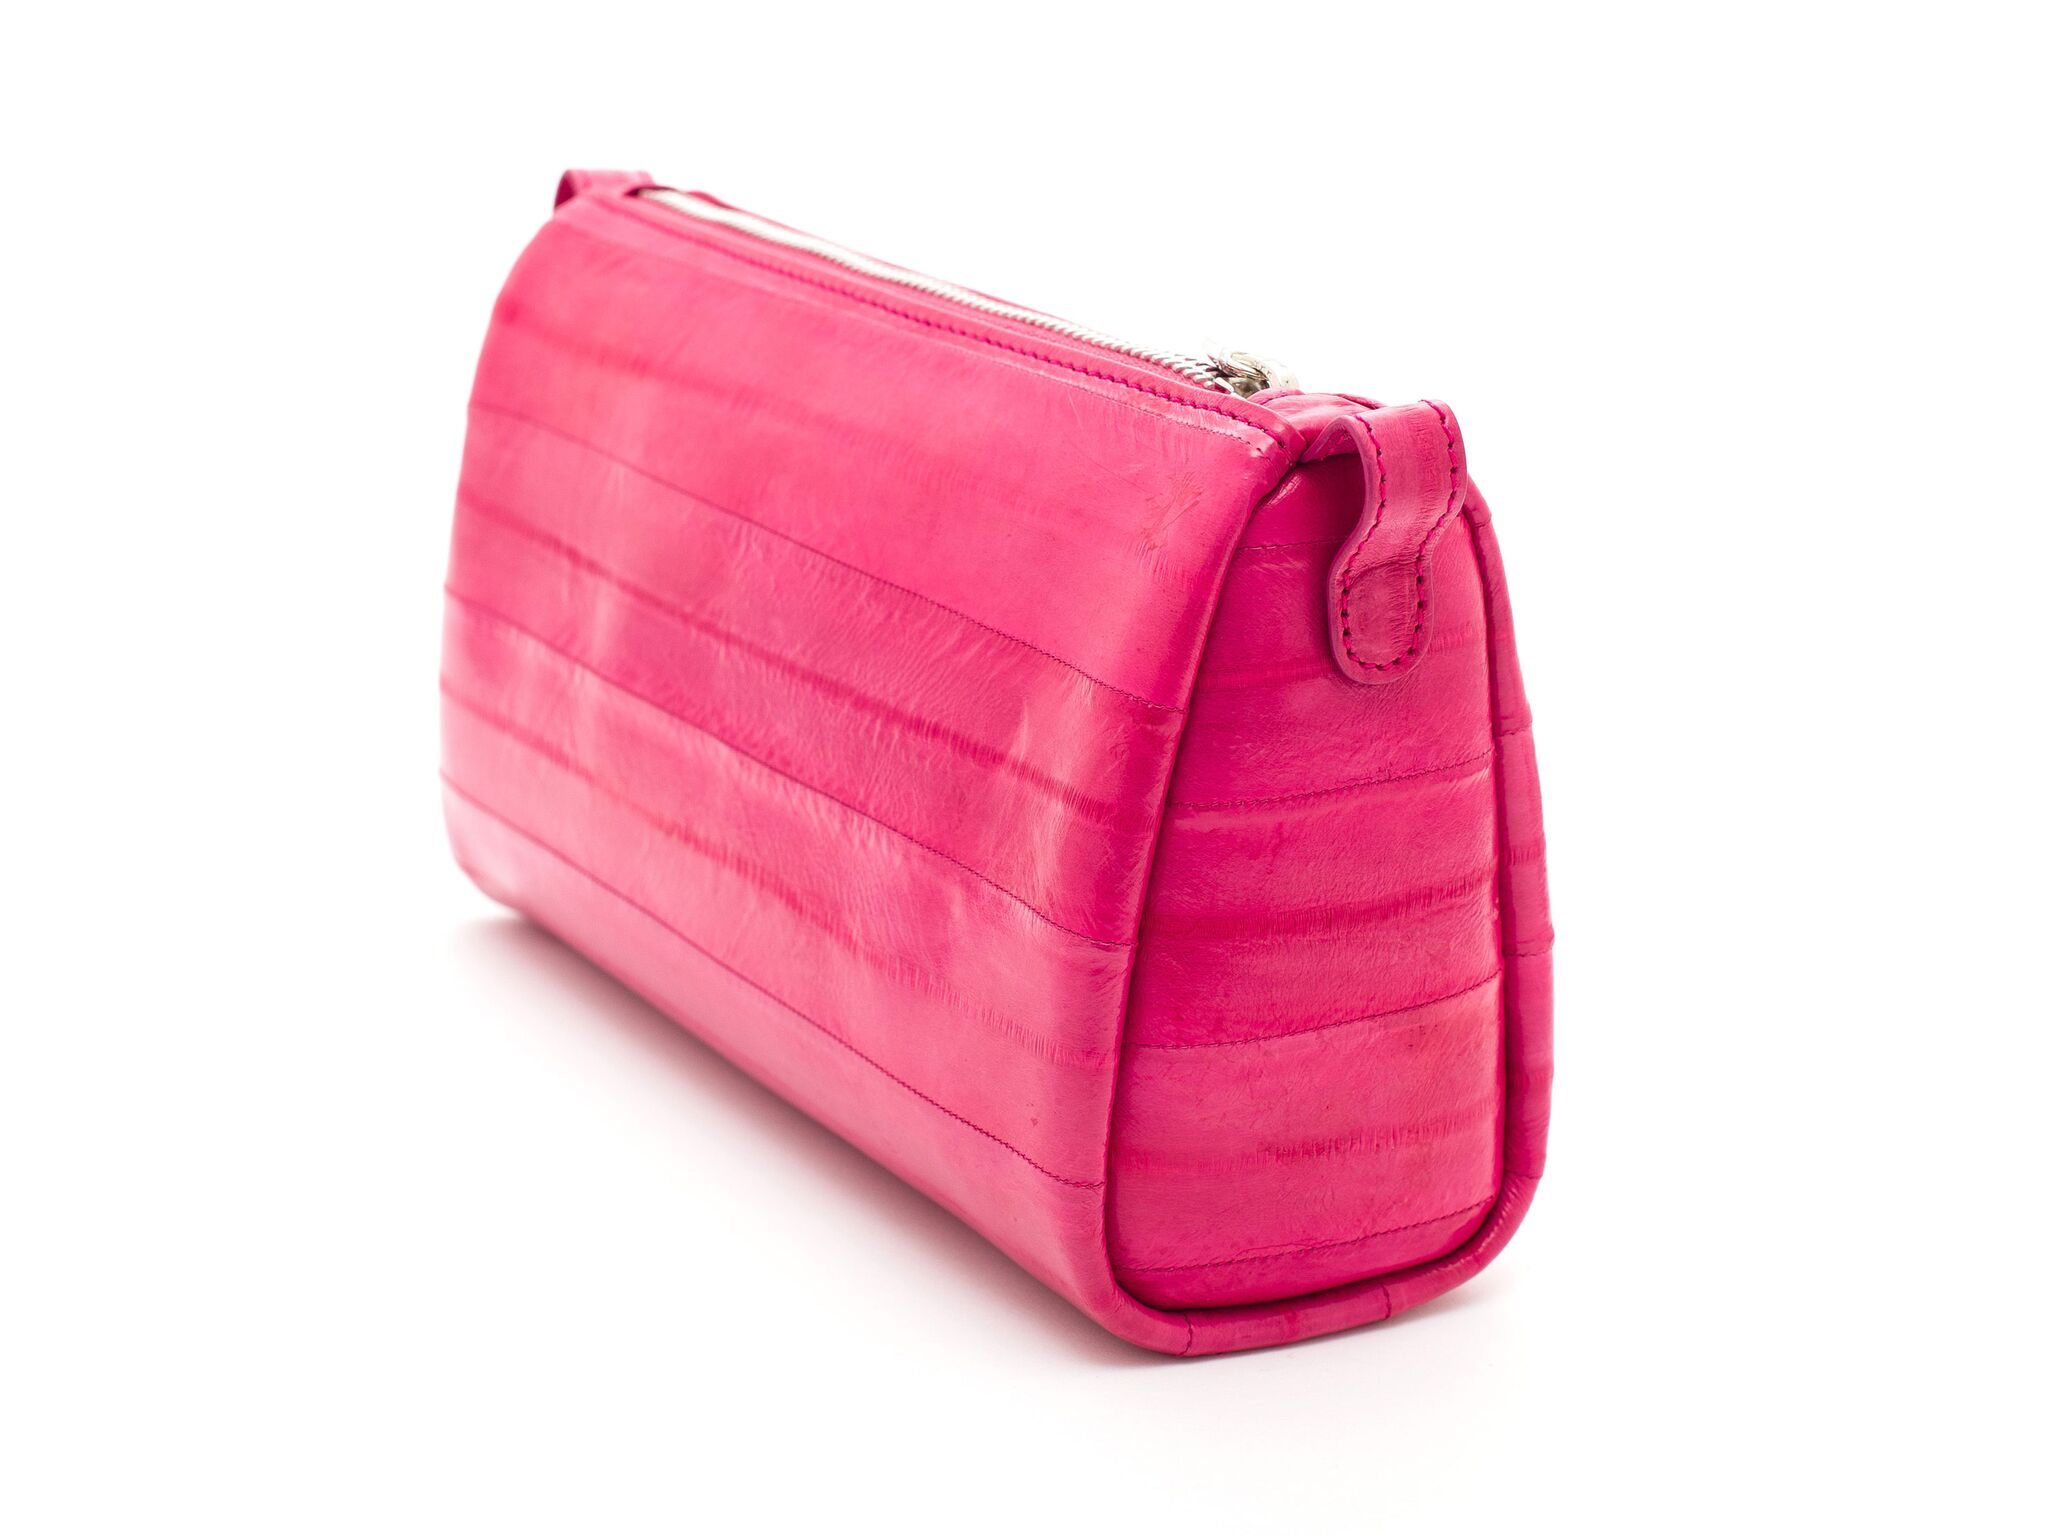 Jade Farbe Luxury Leather Travel Bag Jade Farbe Tropic Fuchsia